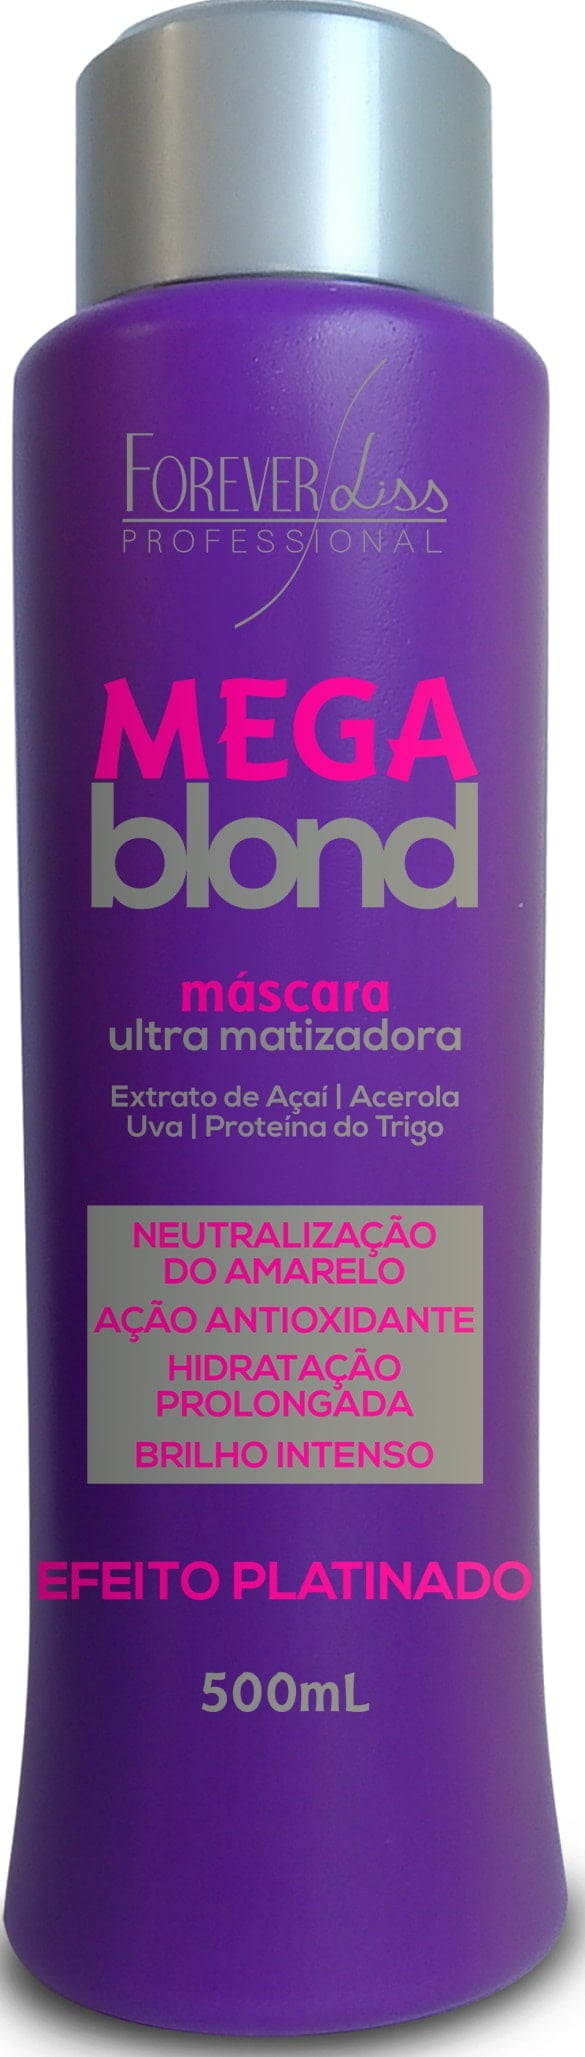 Mascara Matizadora Mega Blond Forever Liss 500ml Black